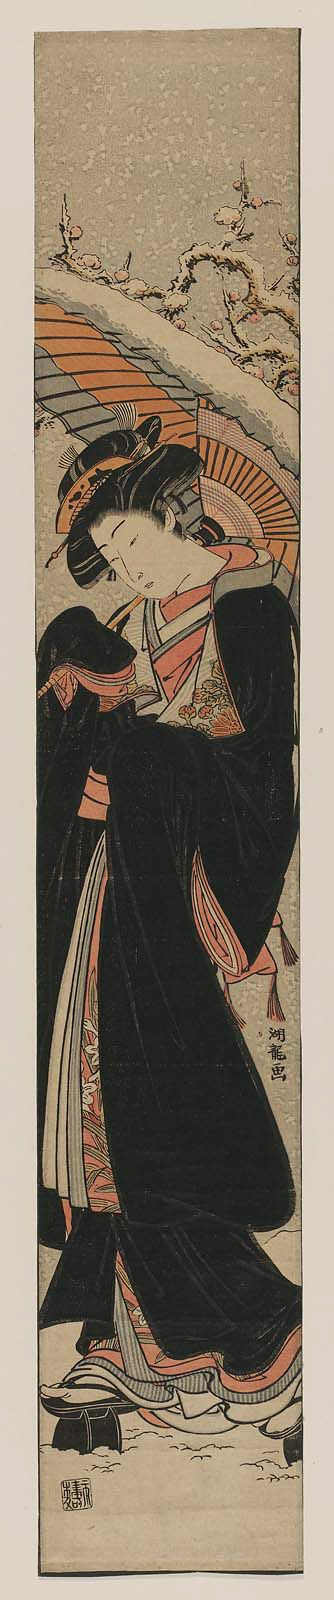 042礒田湖龍斎<(雪中美人)>Woman in Black Raincoat (Kappa) Walking in Snow | Museum of Fine Arts, Boston